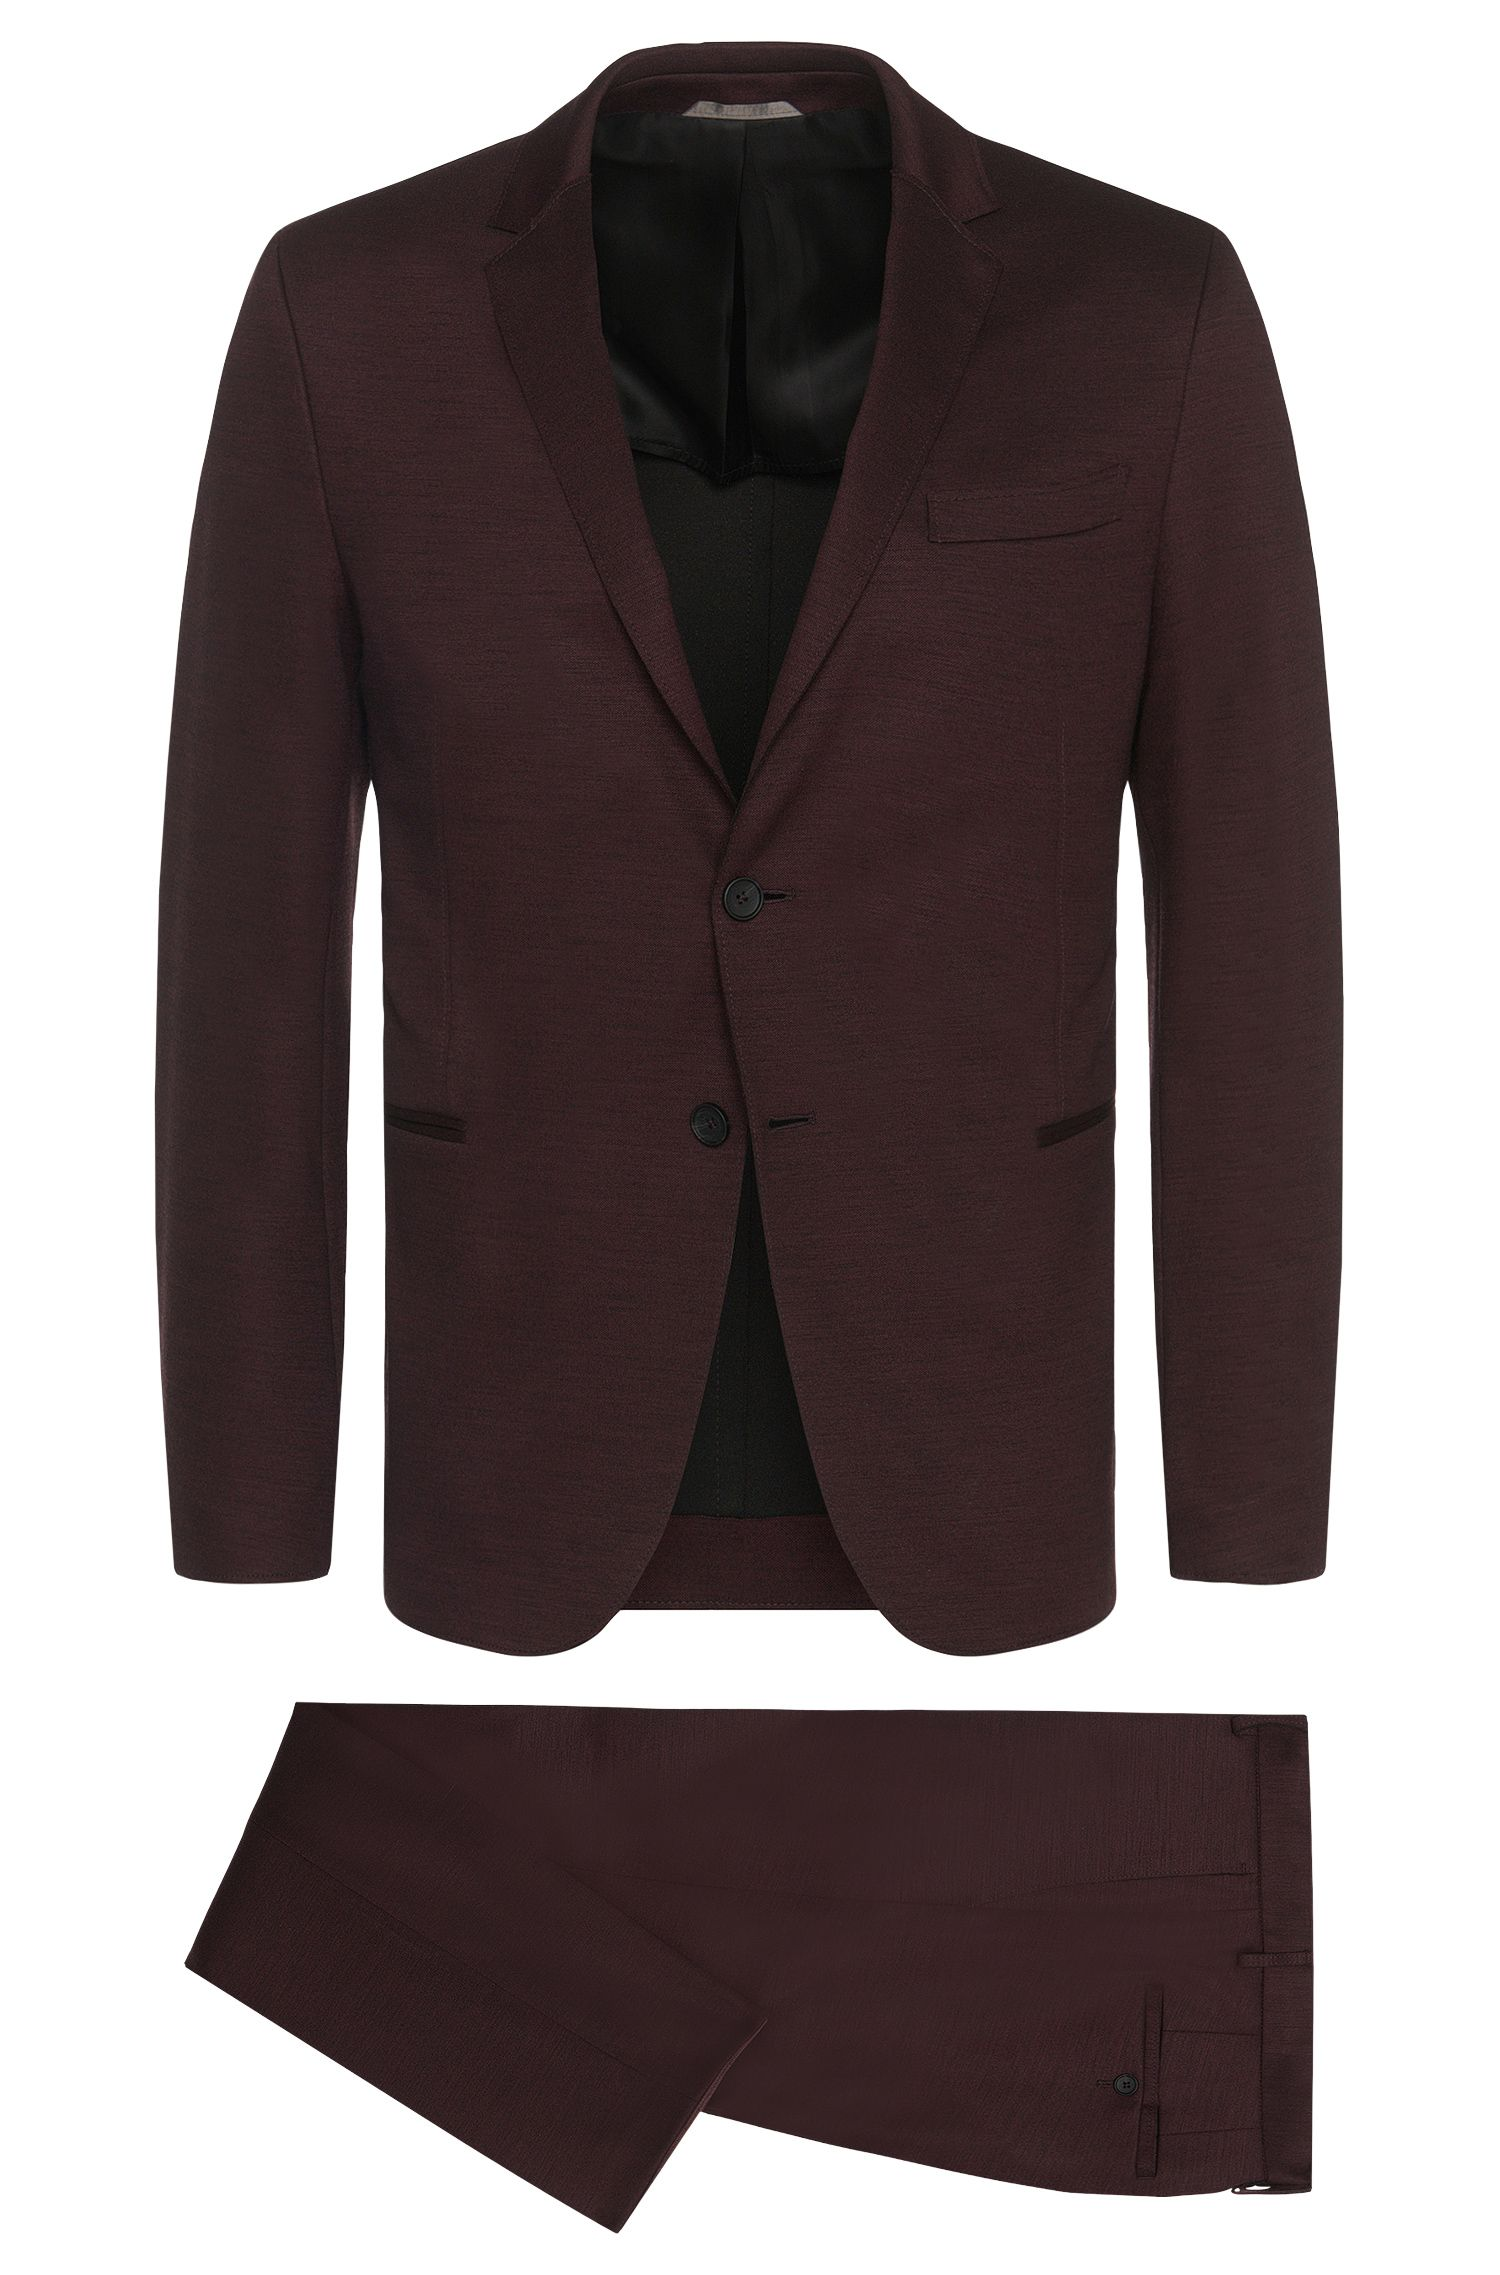 Stretch Virgin Wool Blend Jersey Suit, Slim Fit | Natan/Bruce